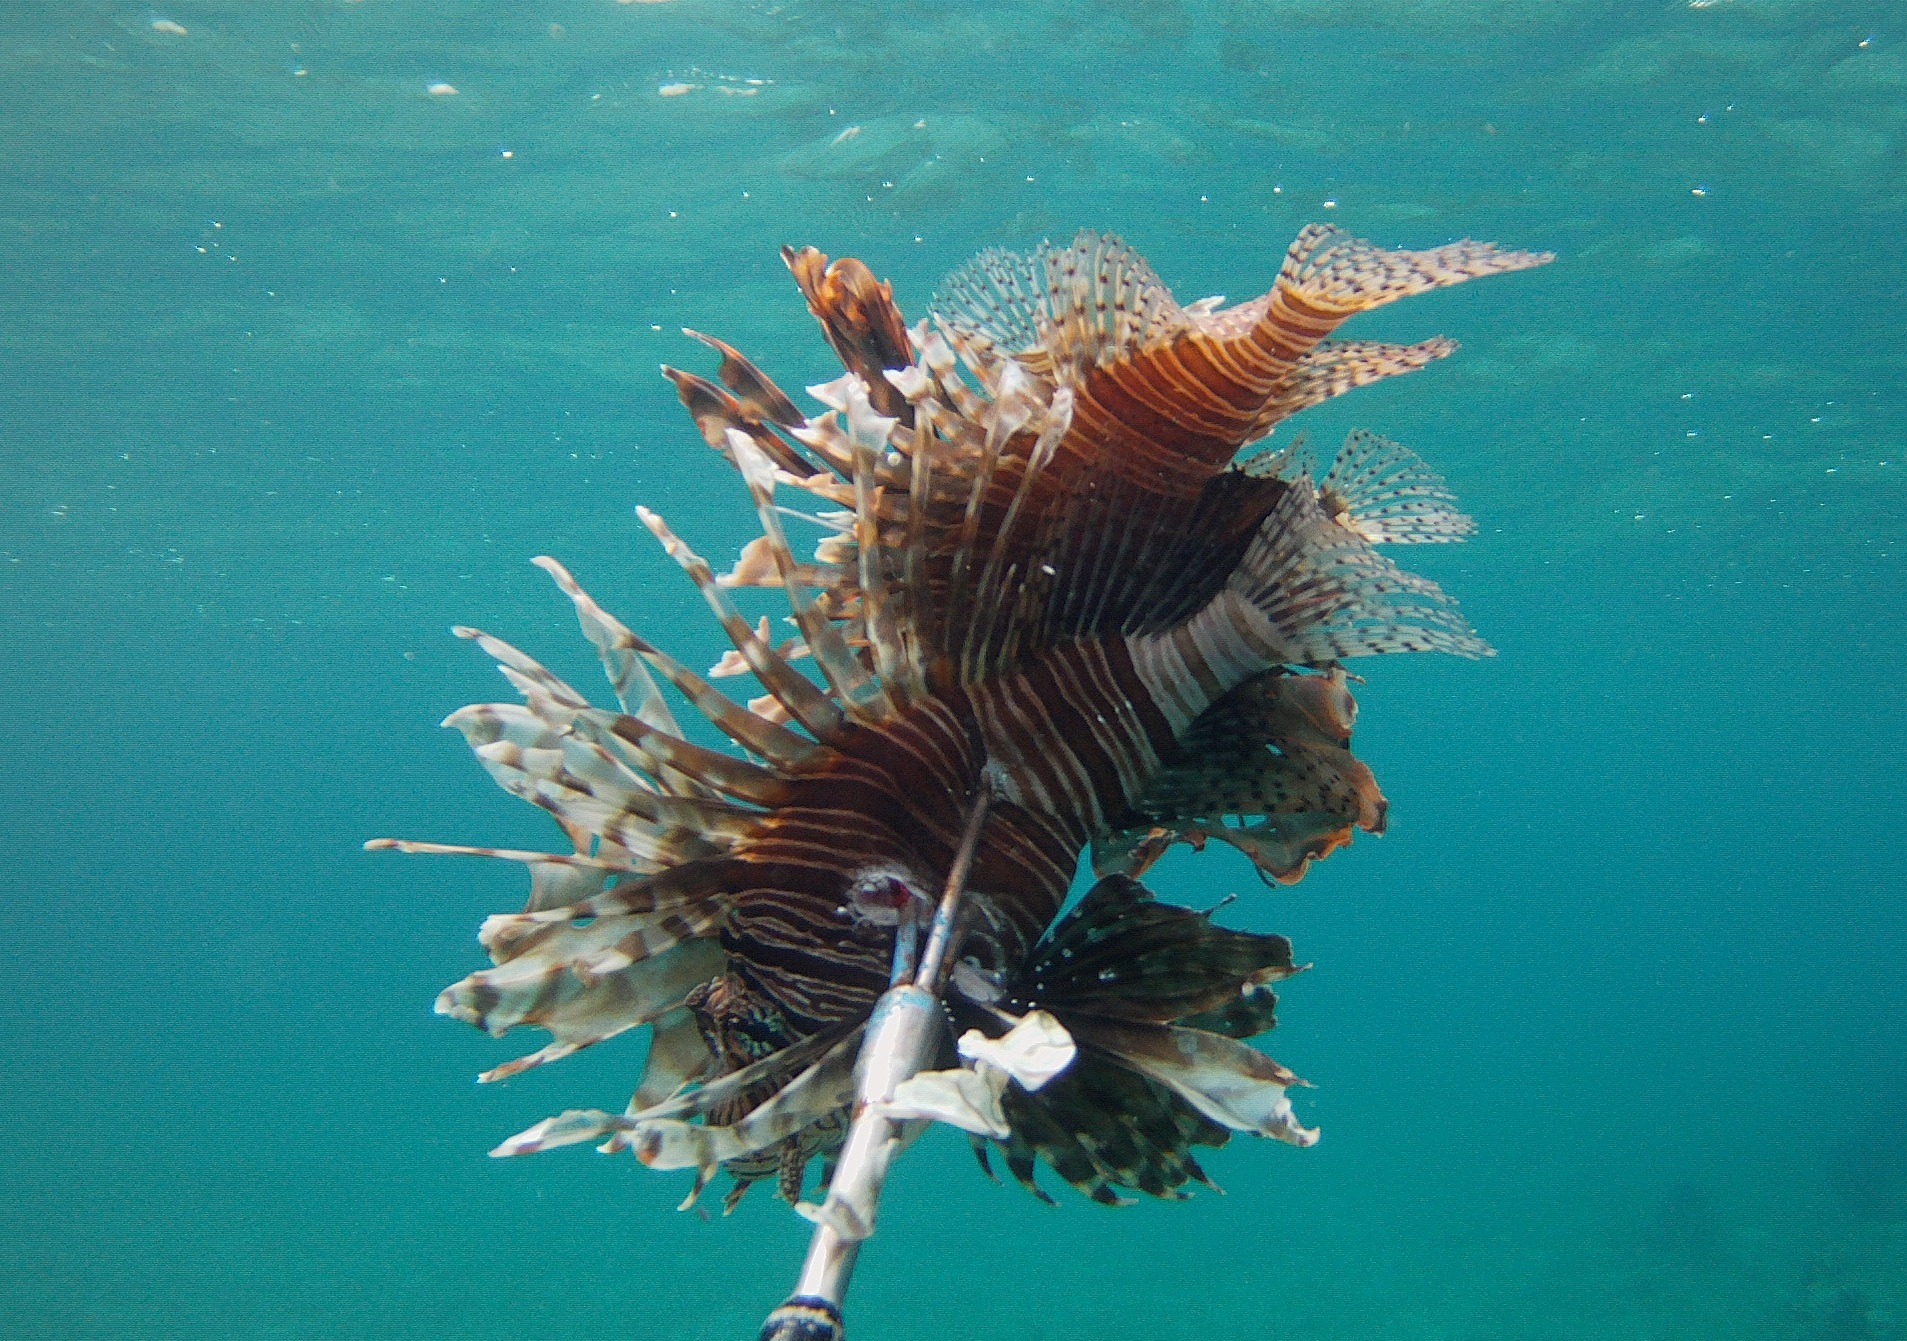 One of the lionfish removed during surveys